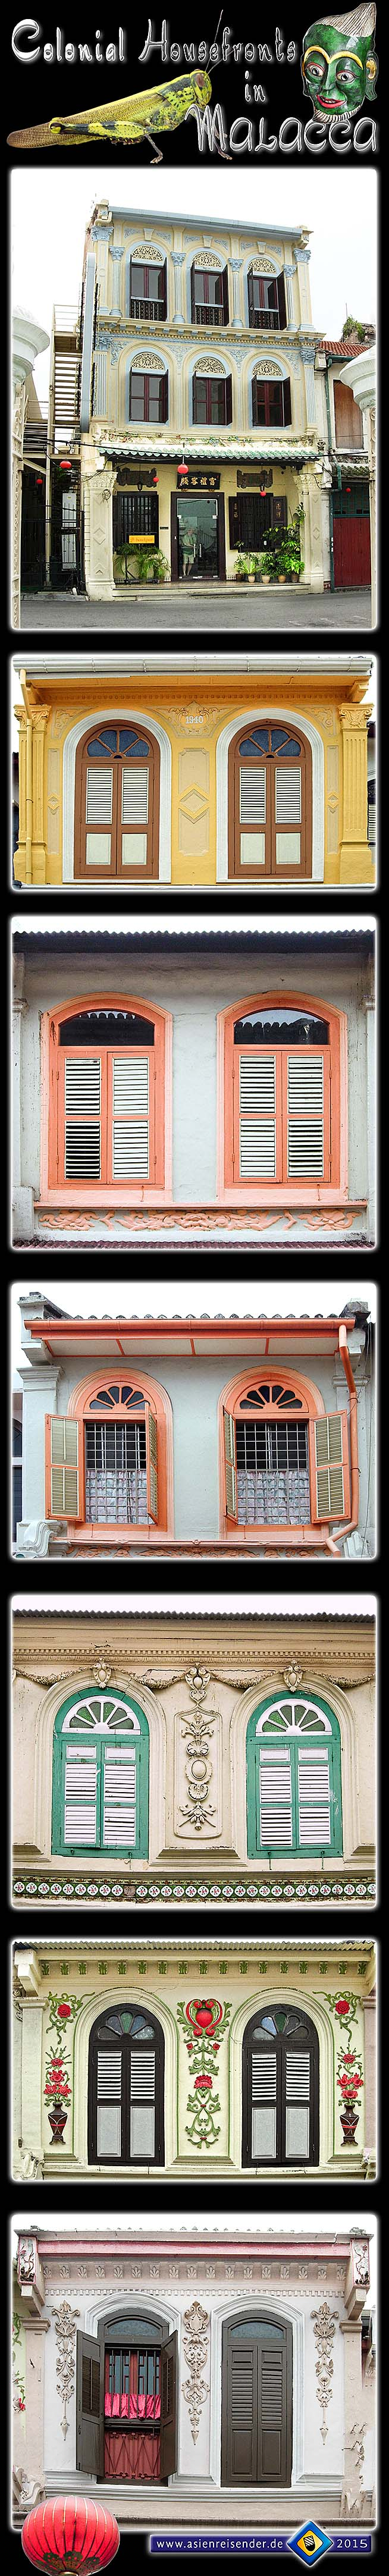 Photocomposition 'Colonial Shophouse Windows in Malacca' by Asienreisender